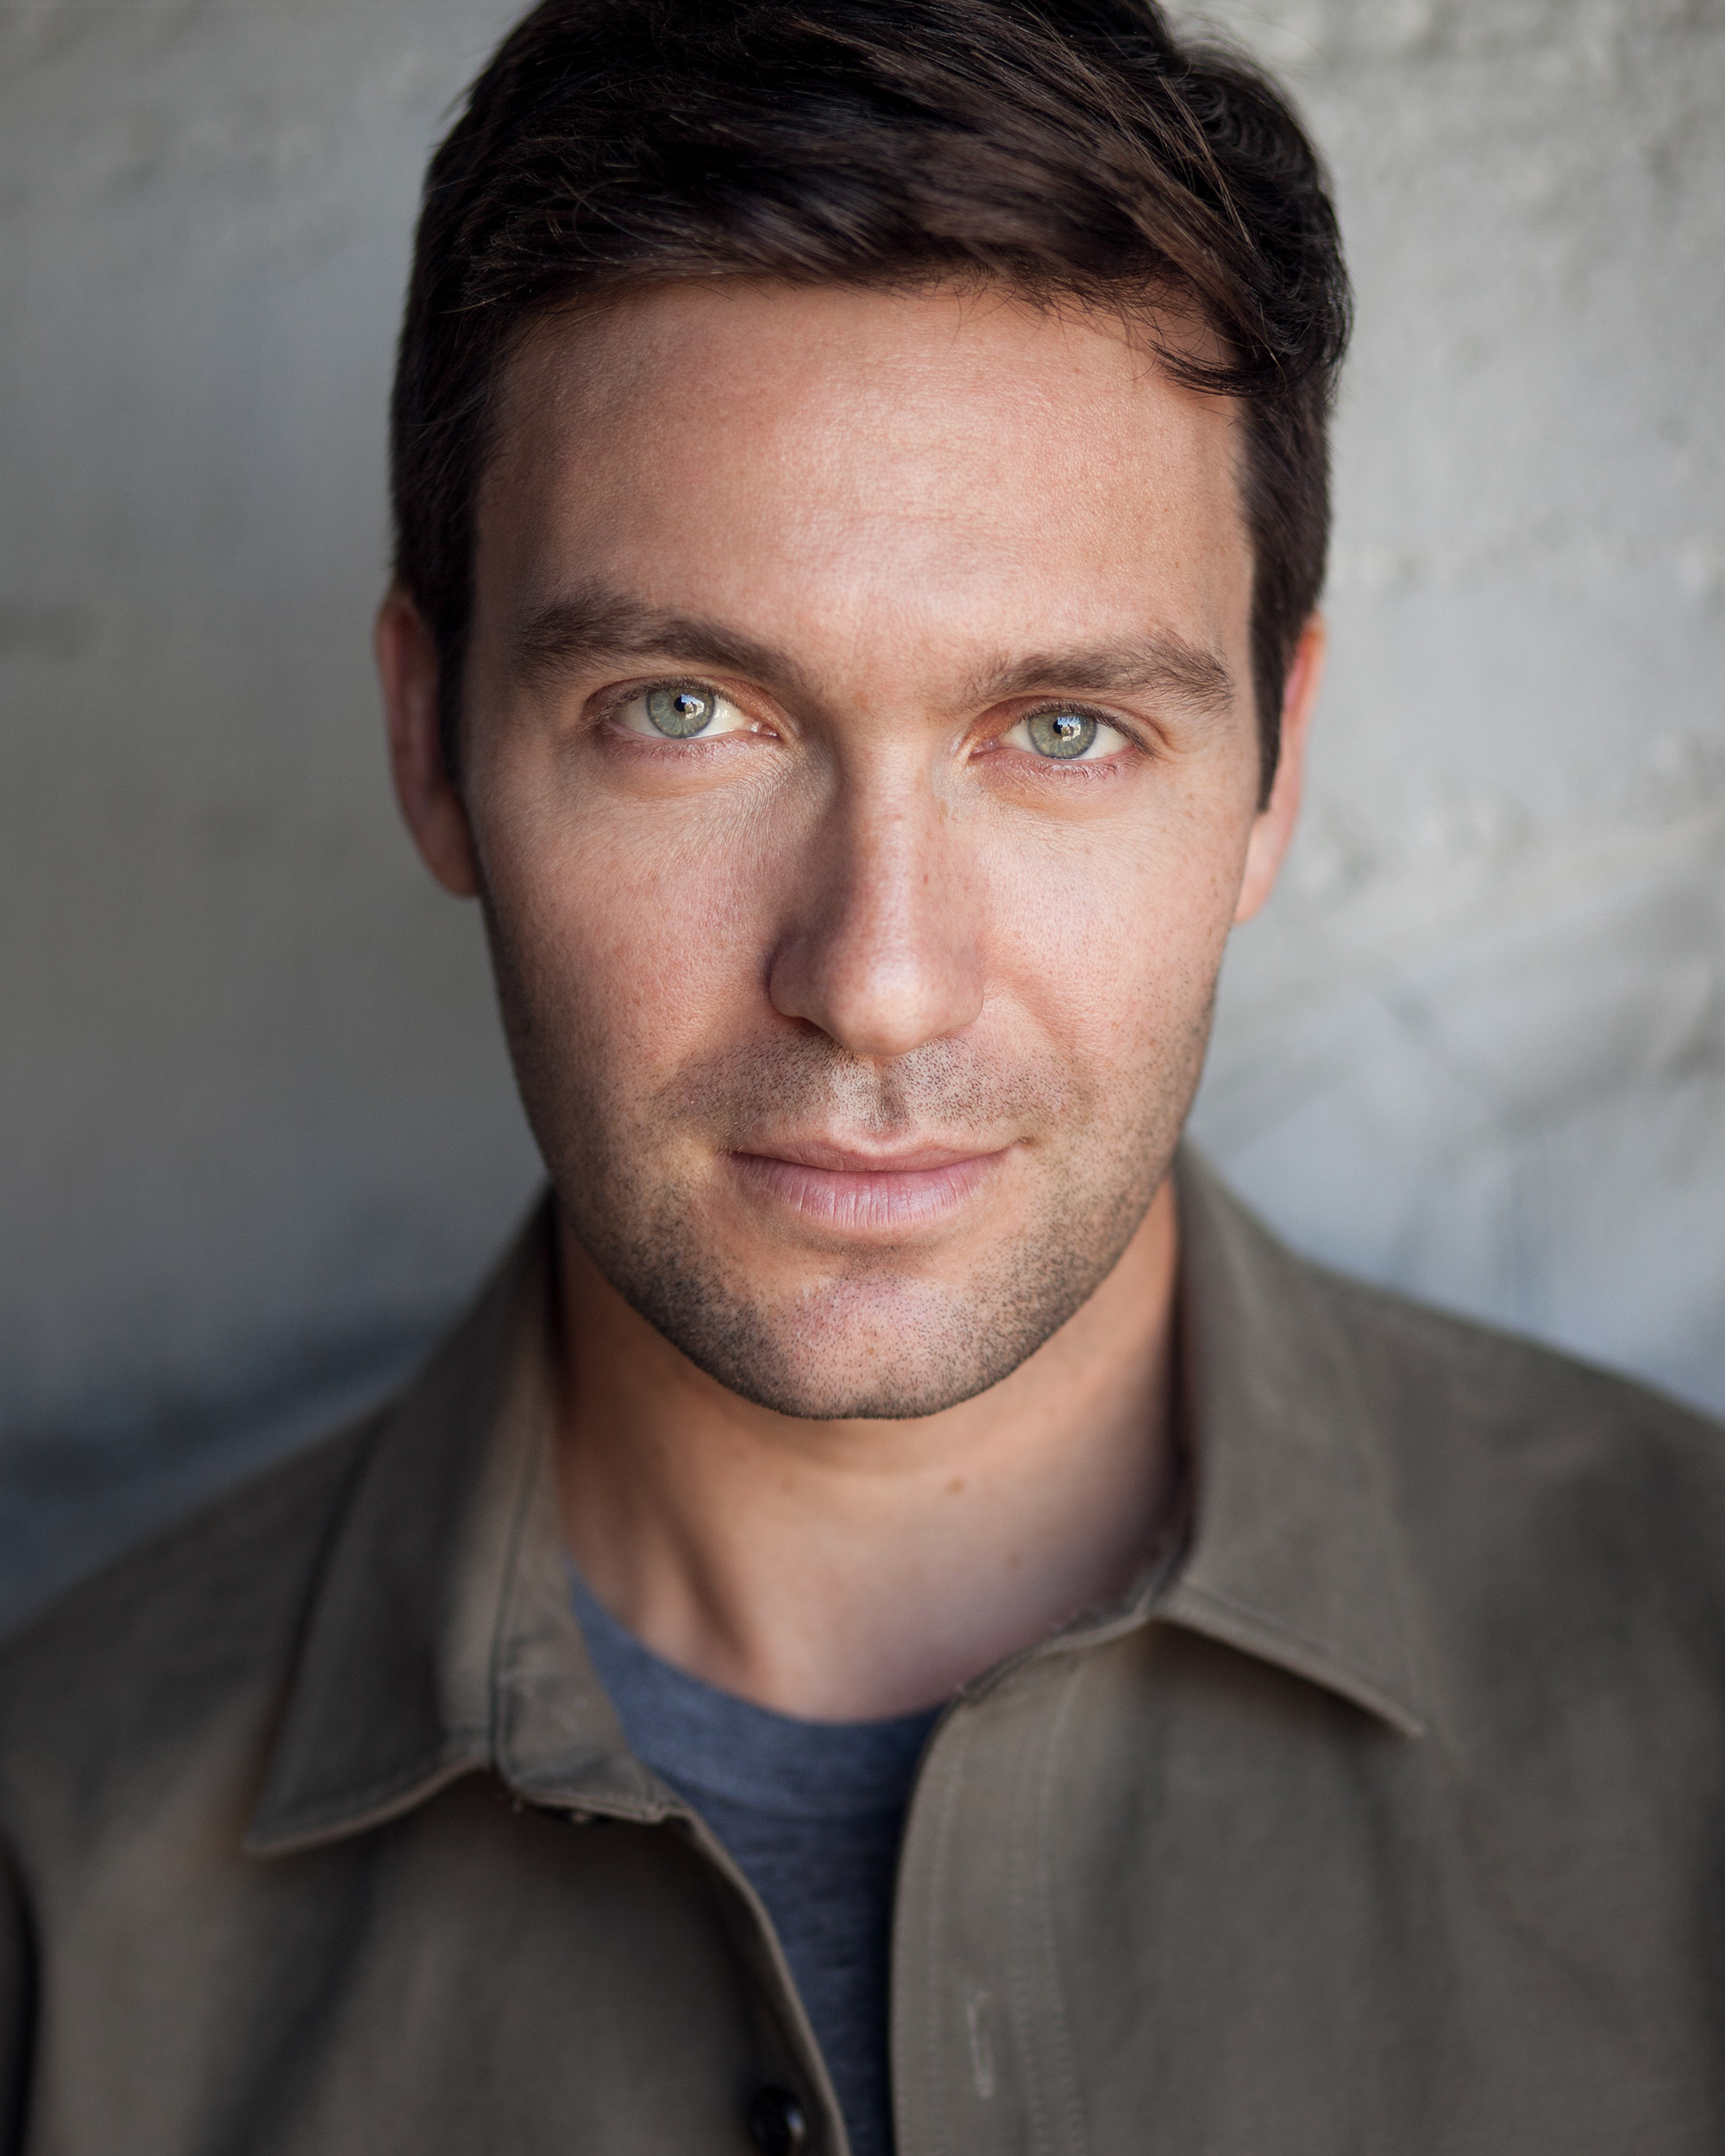 Danny_Binstock_hazel_eyes_actor_headshot.jpg